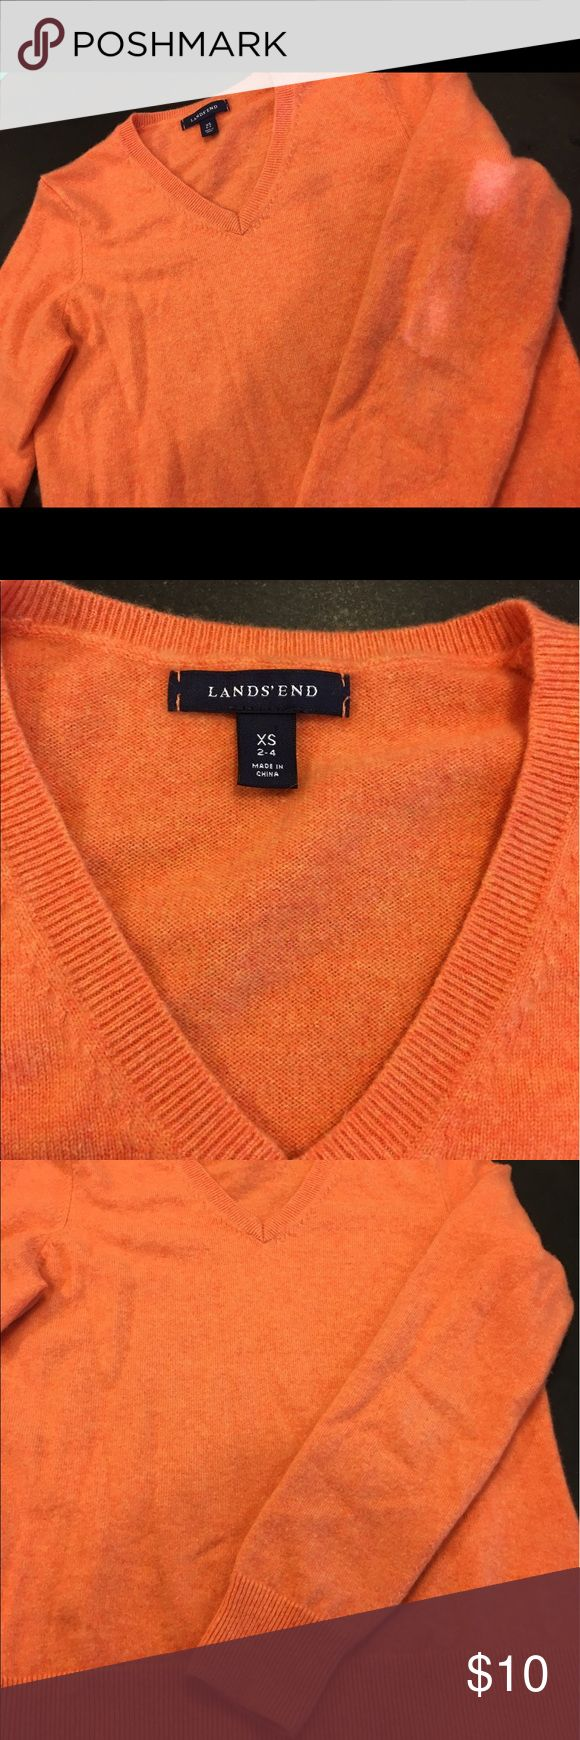 Lands End Orange Cashmere Sweater Orange Cashmere sweater. I've only worn this a few times. As you can see, it is a snug on me. I bought this from a consignment store but it really is in great shape. Lands' End Sweaters Crew & Scoop Necks